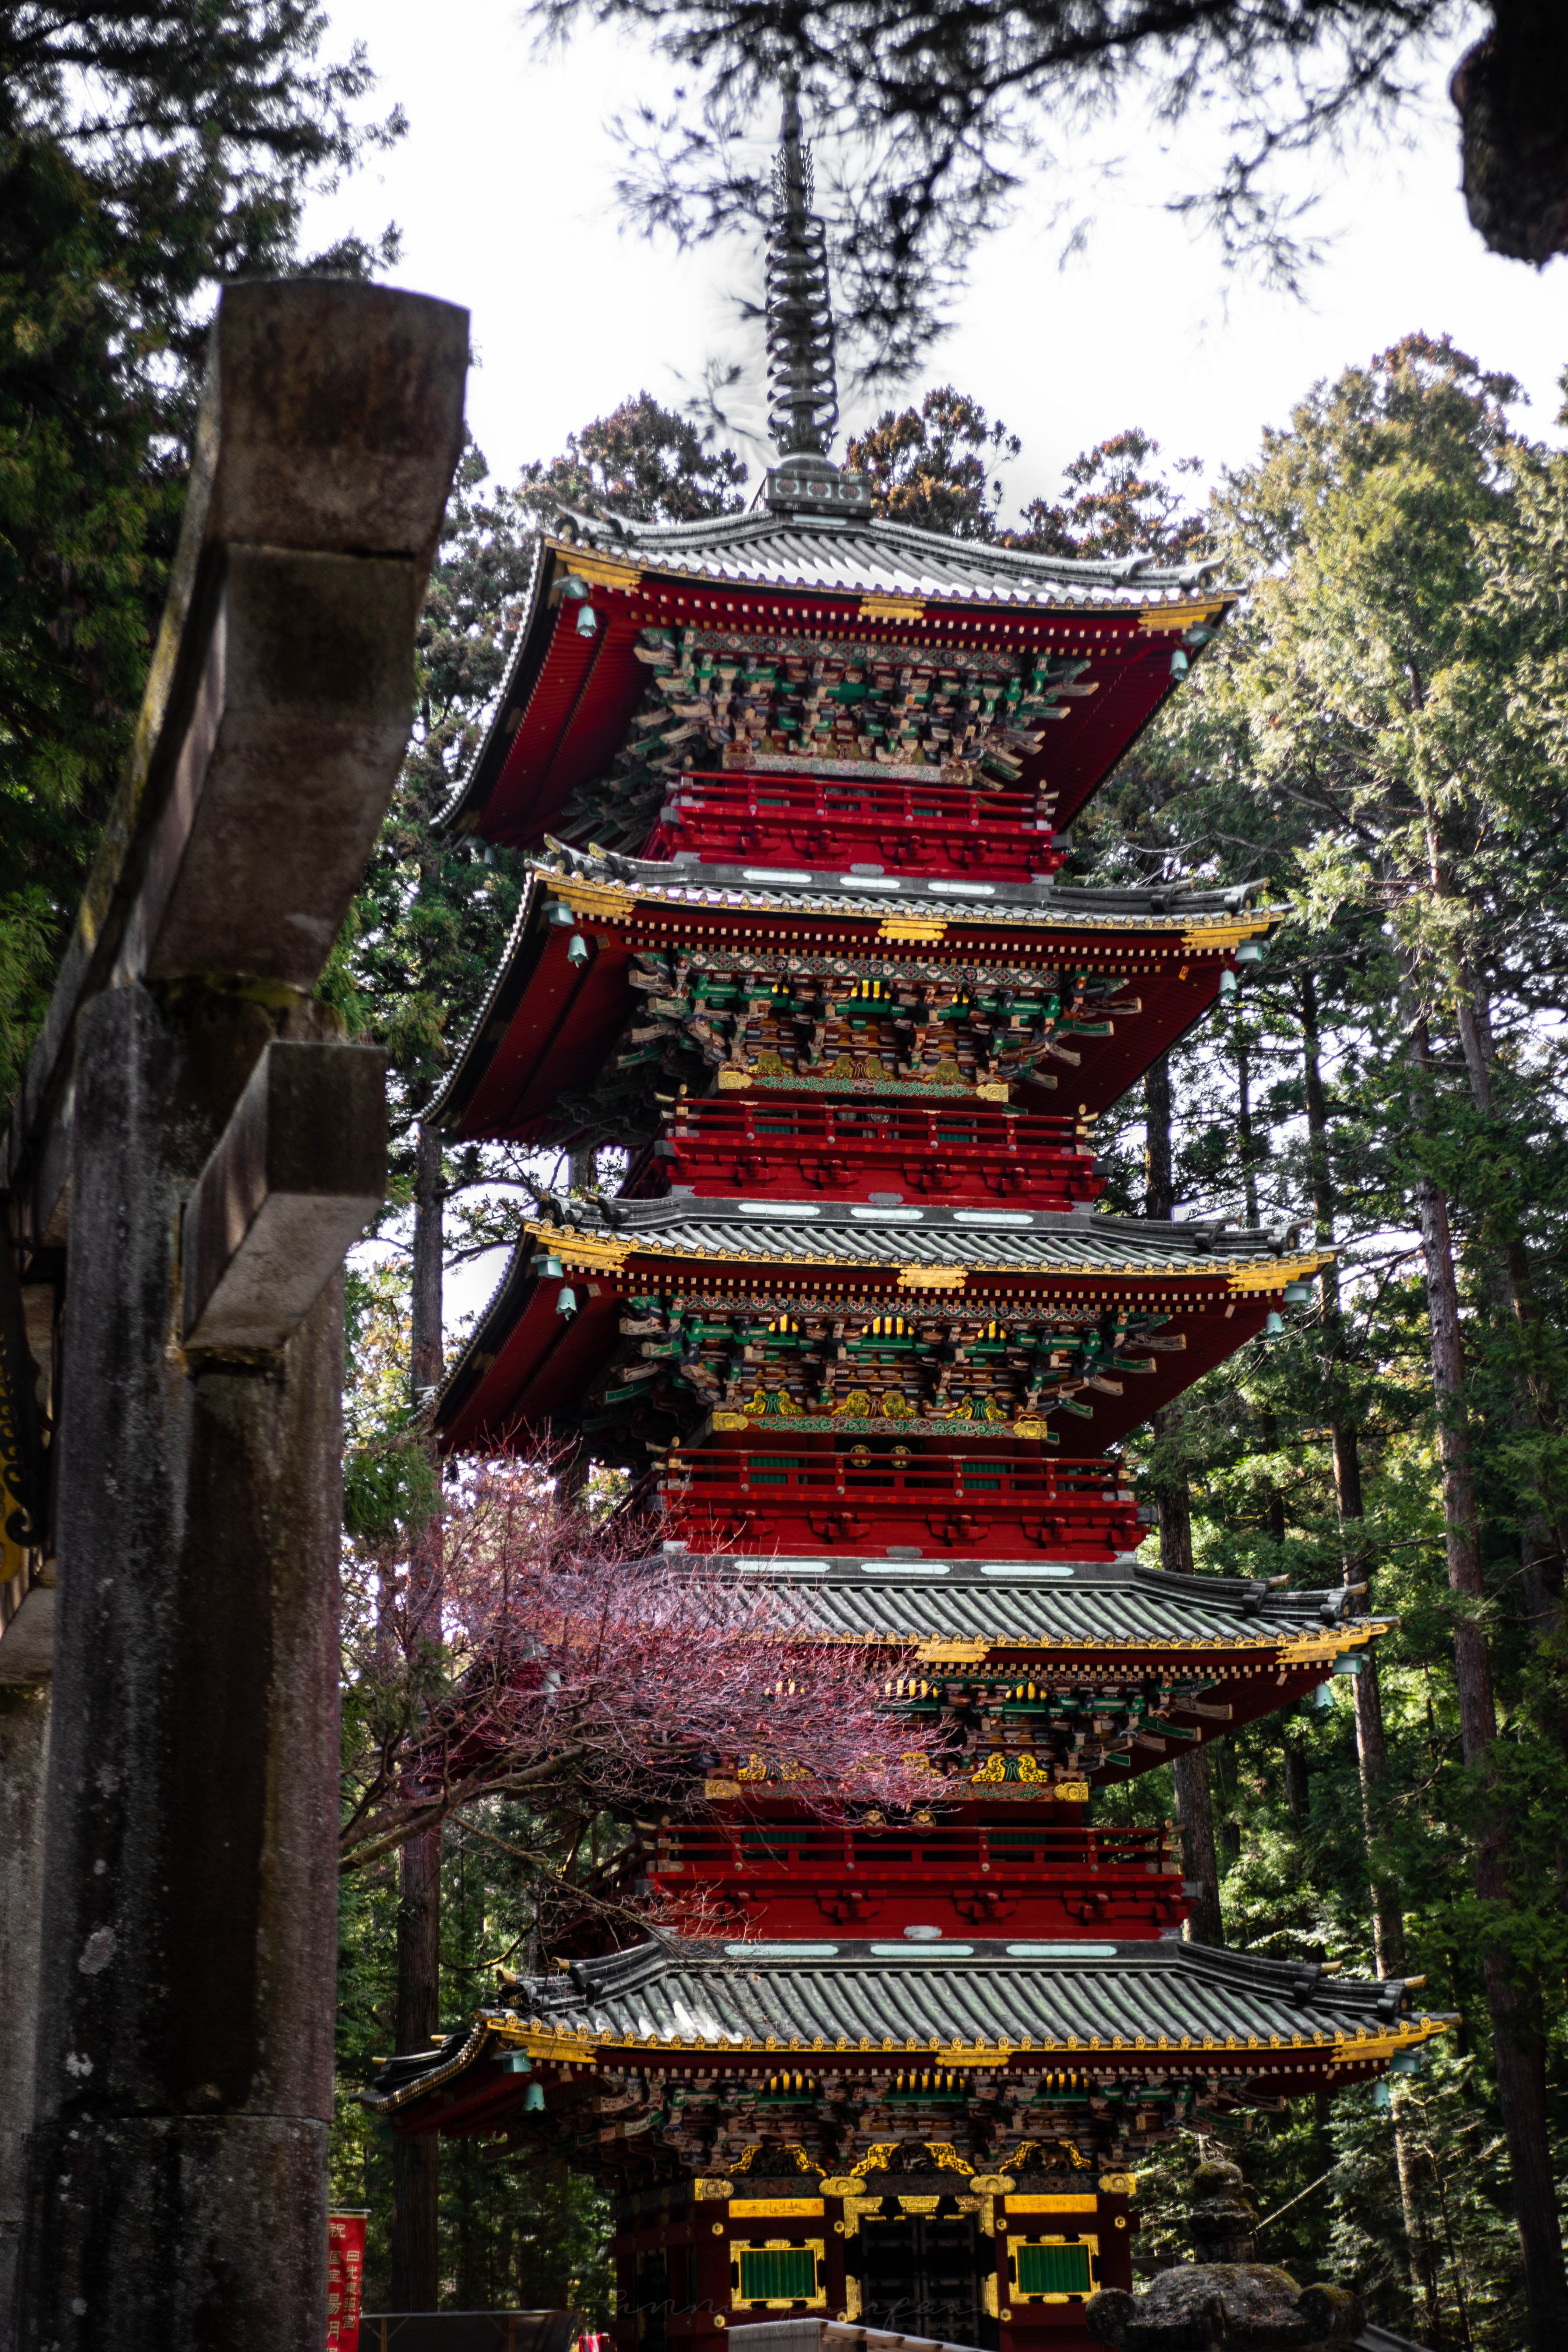 Red Pagoda Nikko, Japan, the Ultimate Travel Guide Written, Researched, and Photographed by Travel Writer & Photographer Annie Fairfax